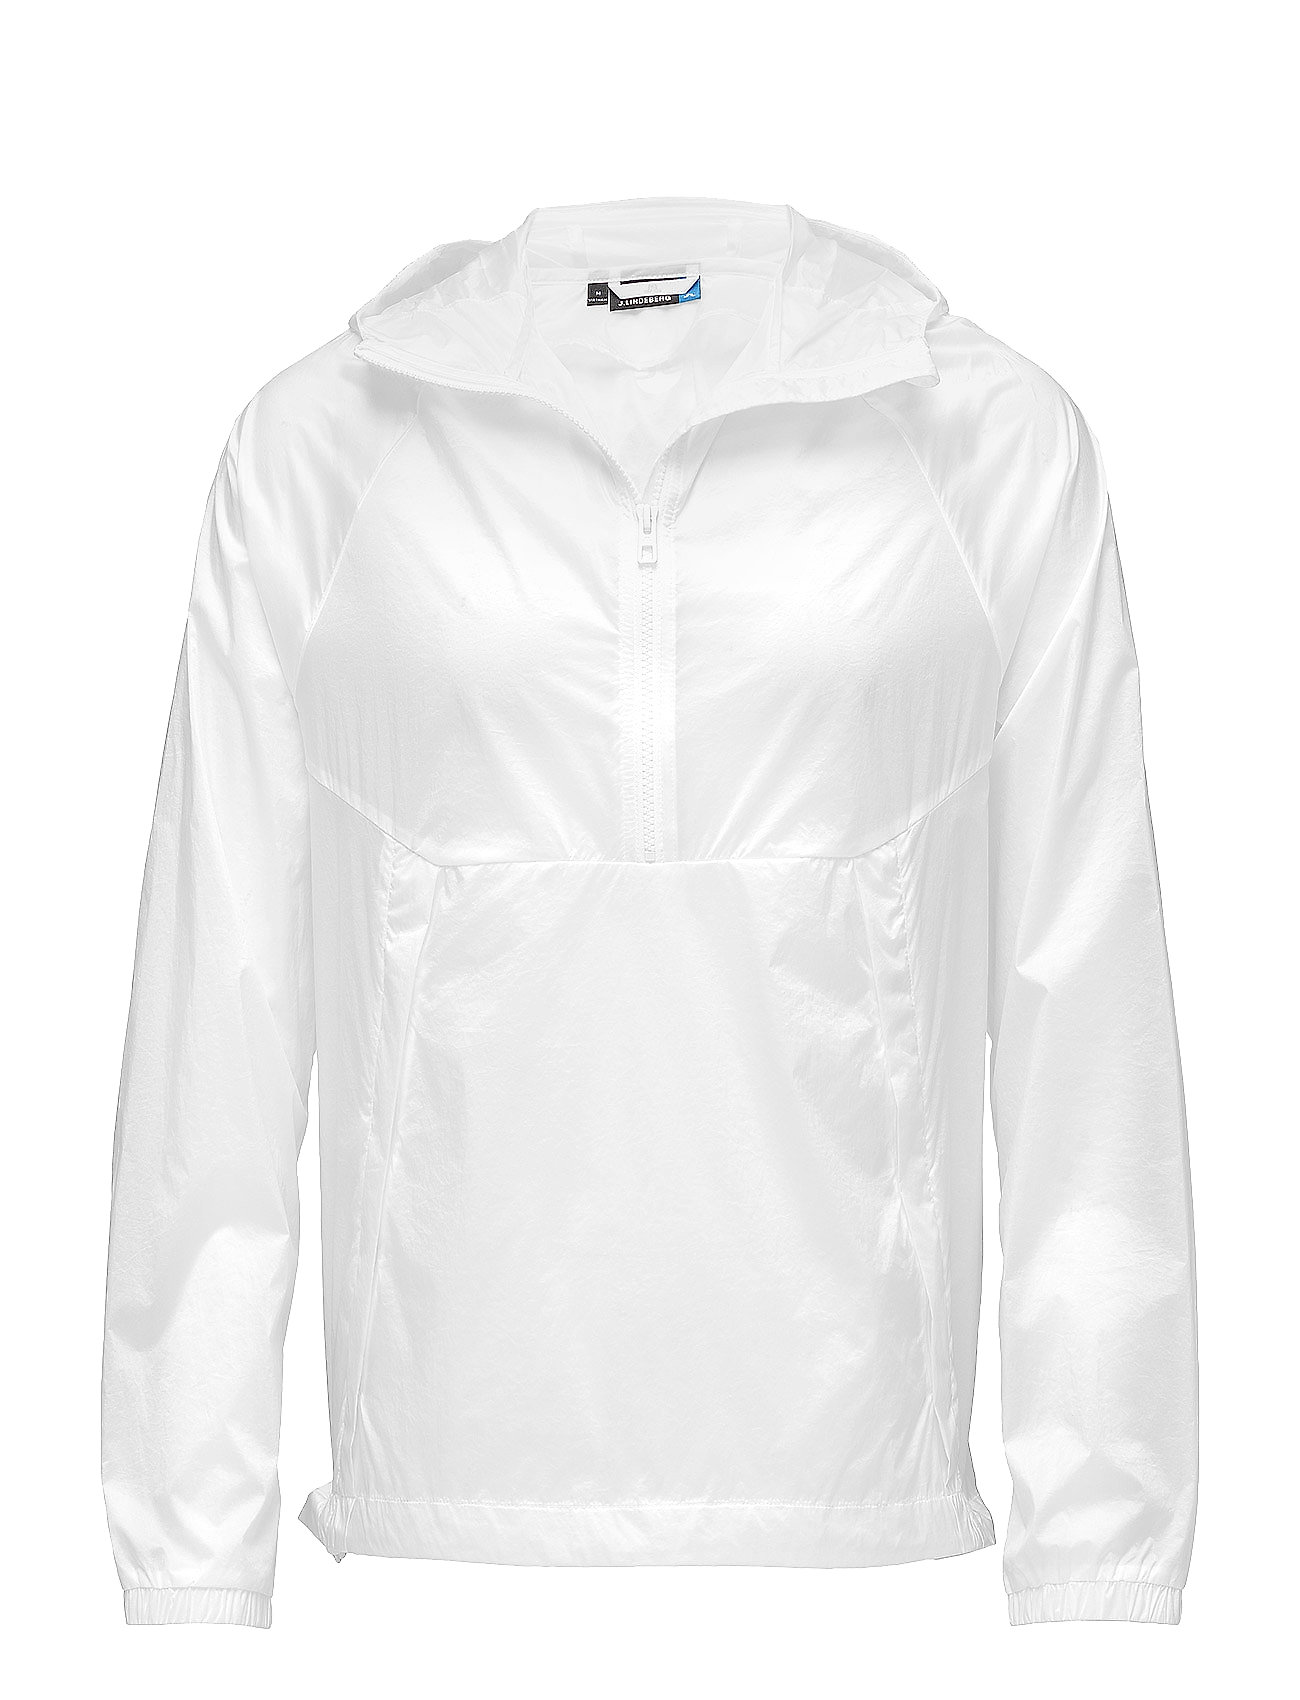 J. Lindeberg M Jimmy Jkt Transparent Nylon - WHITE